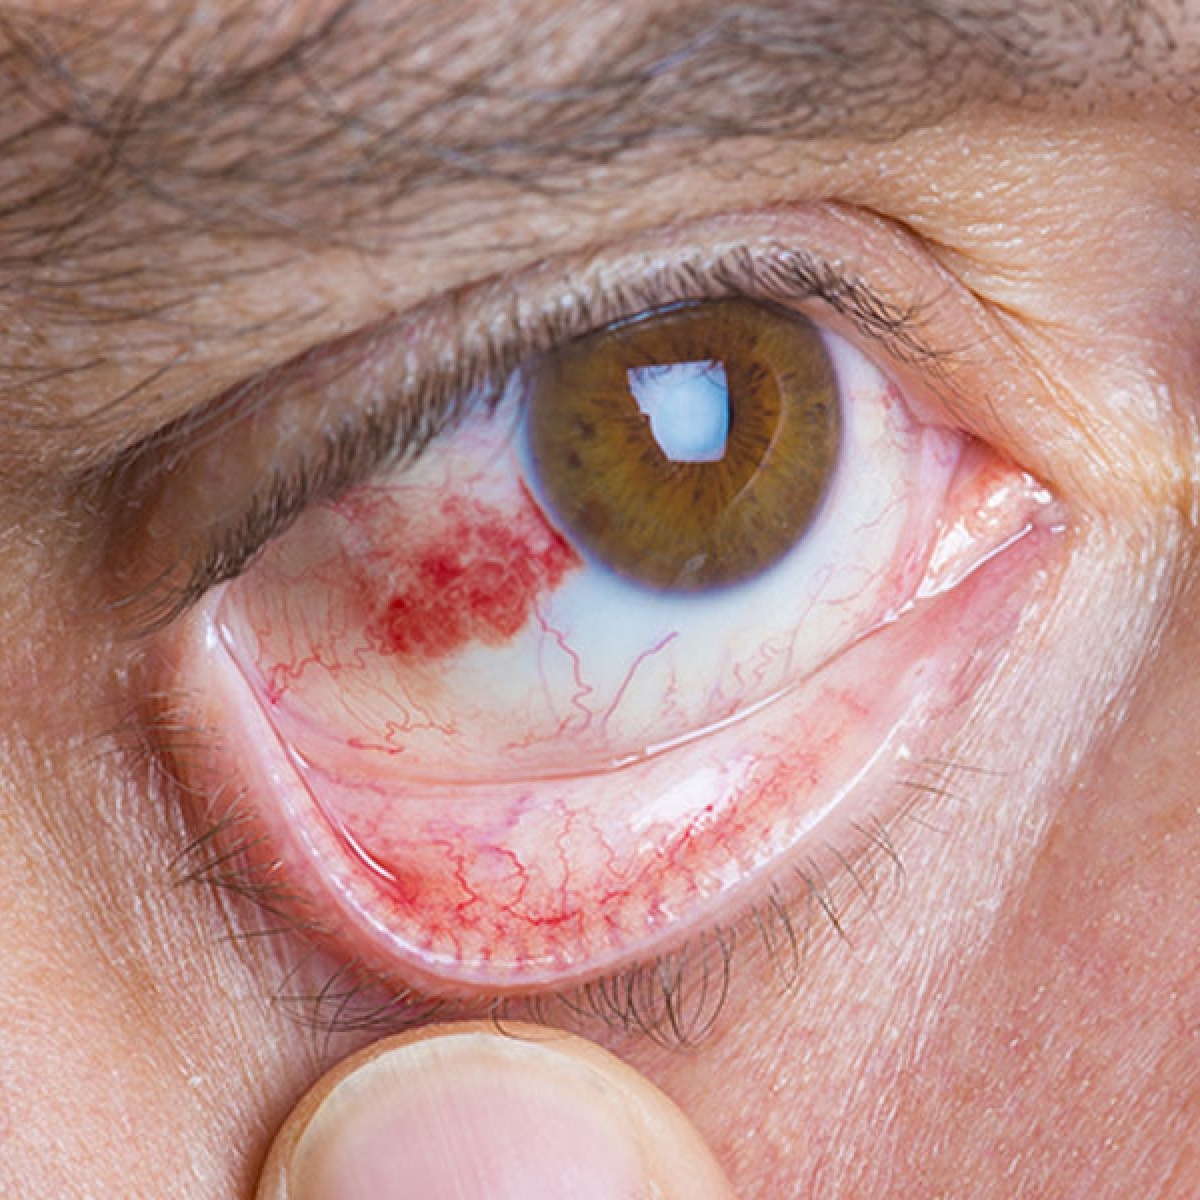 Is conjunctivitis a symptom of COVID-19? Here's all you need to know